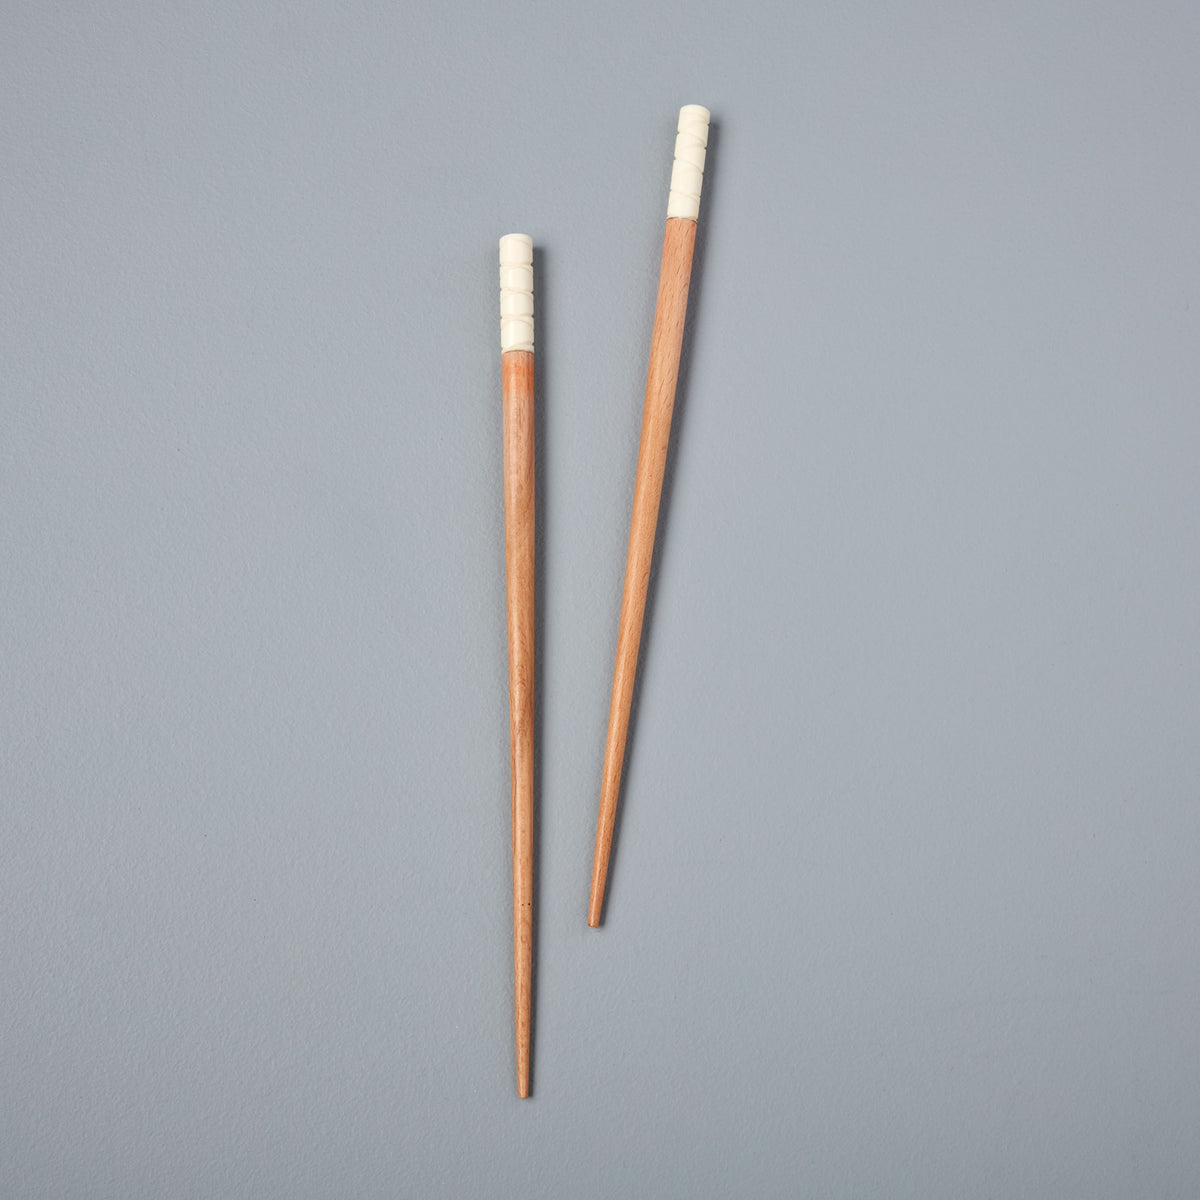 Carved Ivory Resin & Beech Wood Chopsticks